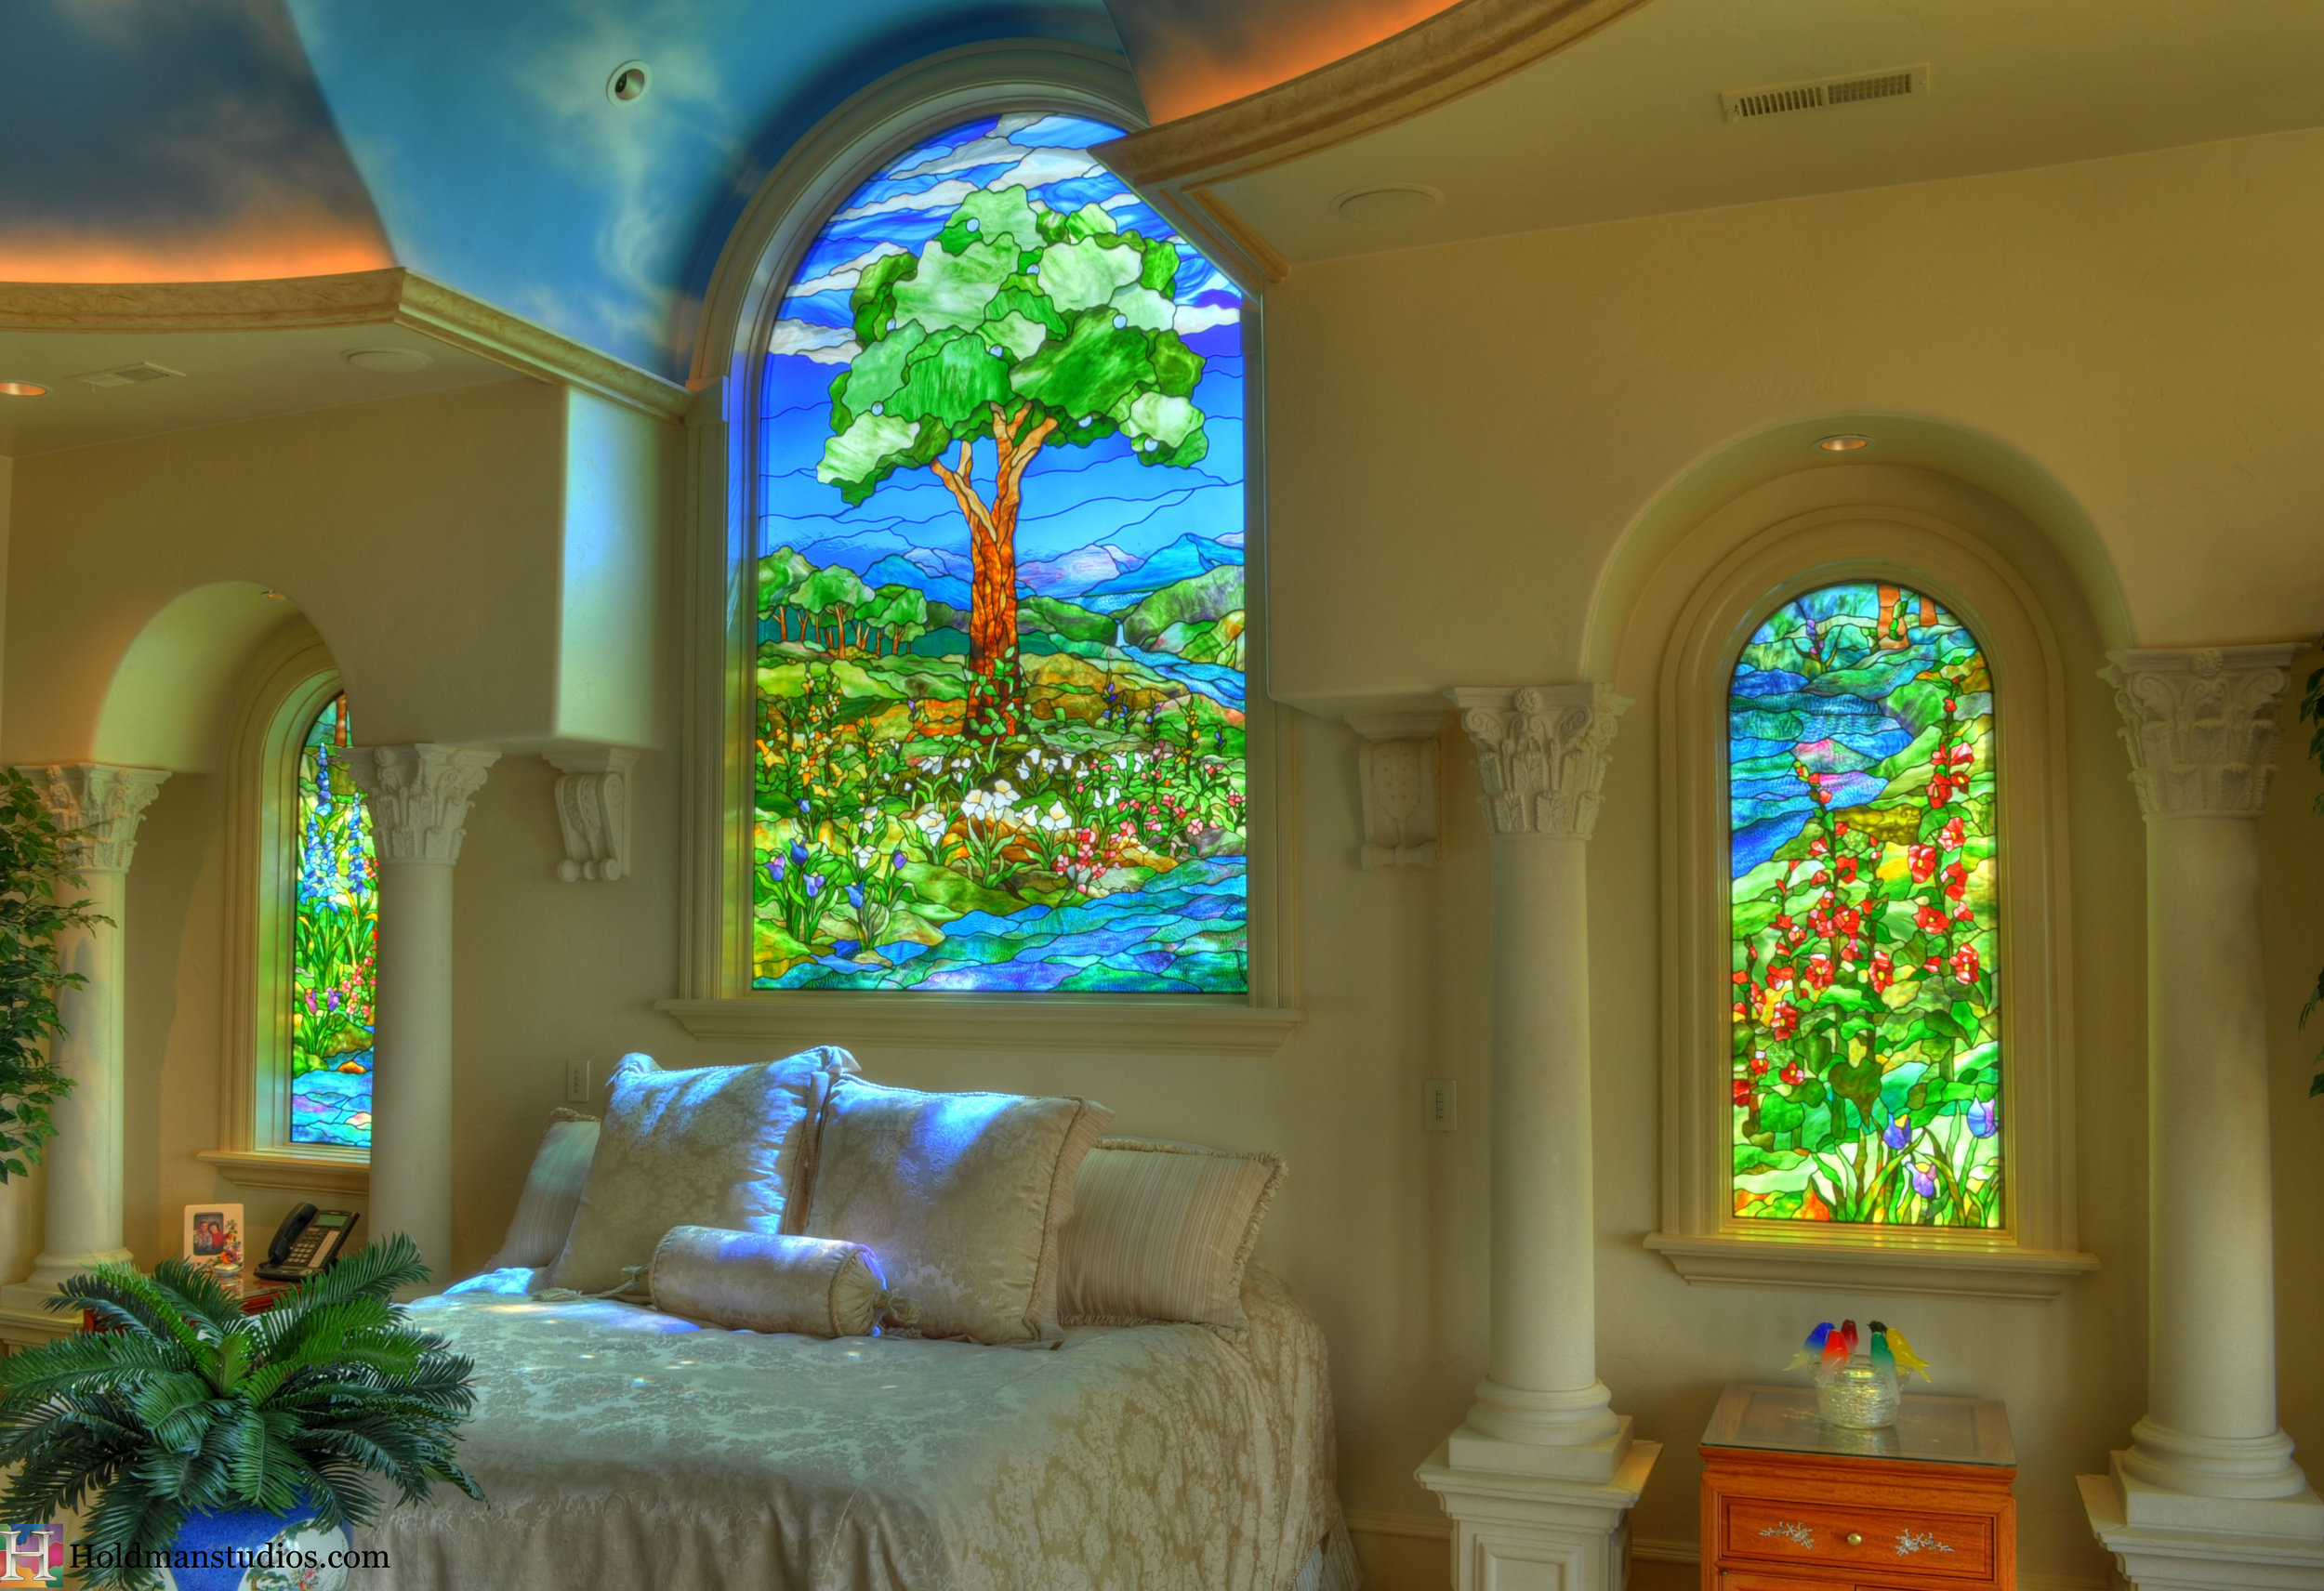 Side view of stained Glass Bedroom windows with trees, river water, flowers, grass, mountains, and clouds in the sky.Created by artists under the direction of Tom Holdman at Holdman Studios.